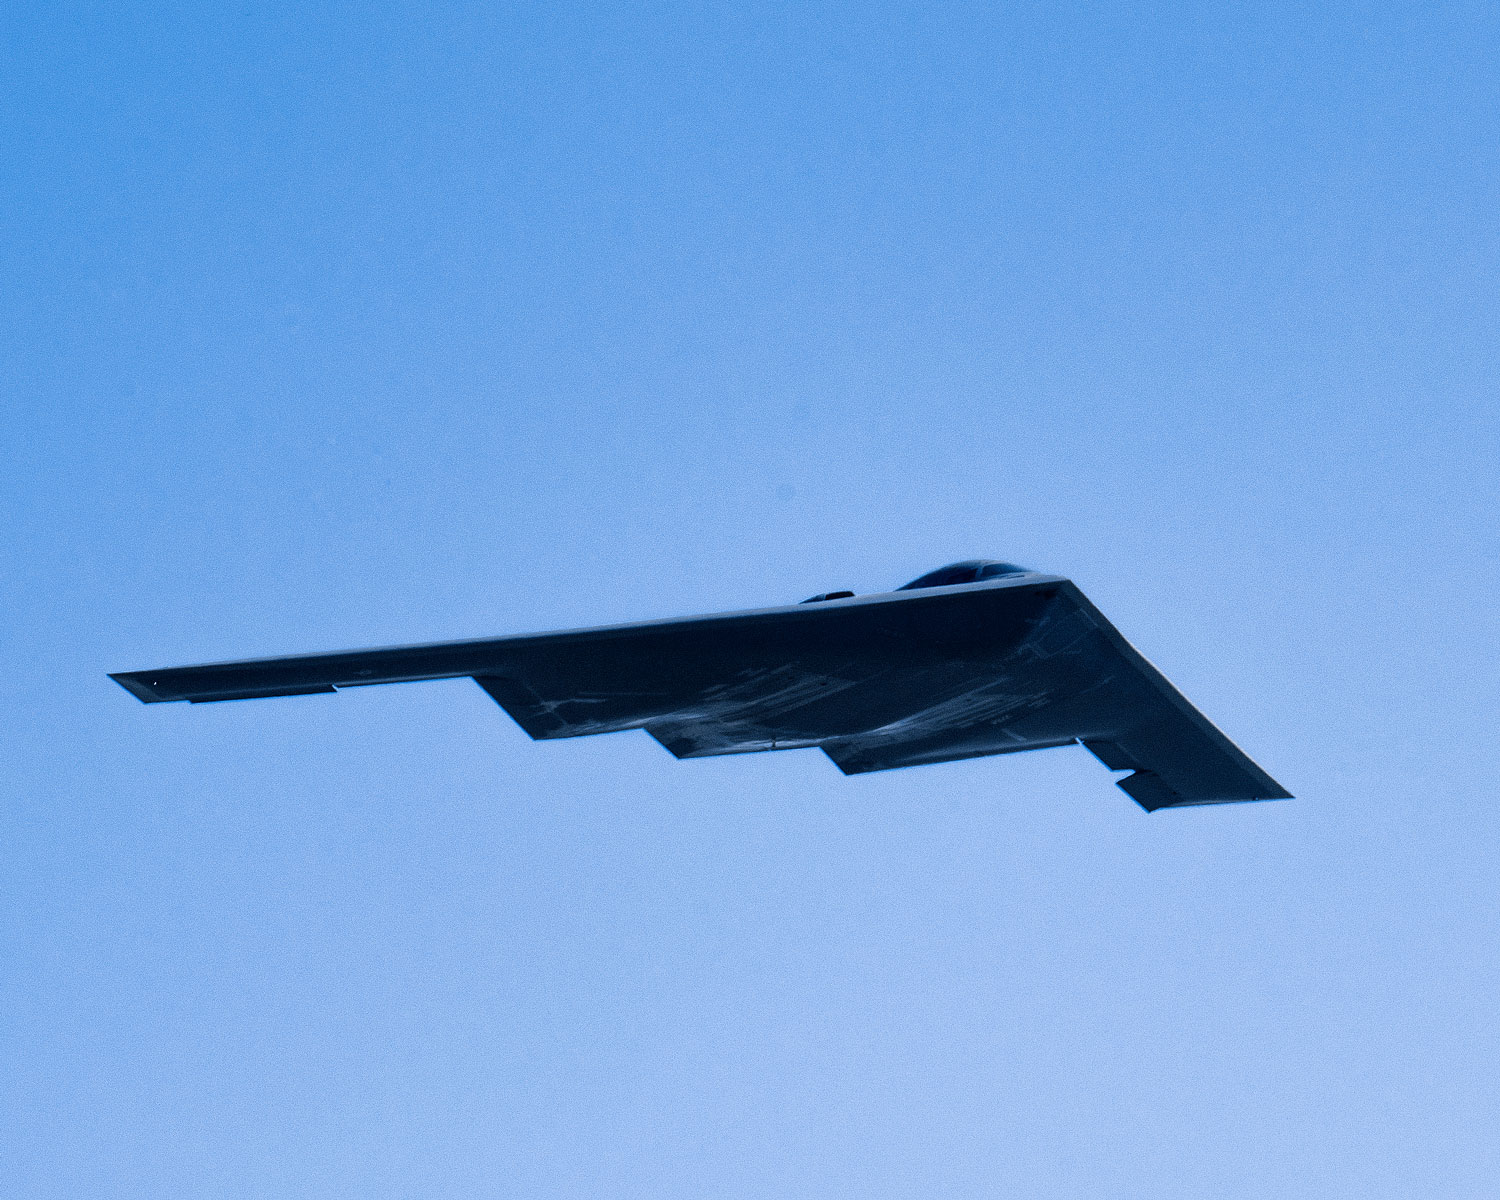 A B-2 Spirit Stealth Bomber flies over Joint Base Andrews, Md., during the 2017 Andrews Air Show: Air and Space Expo.